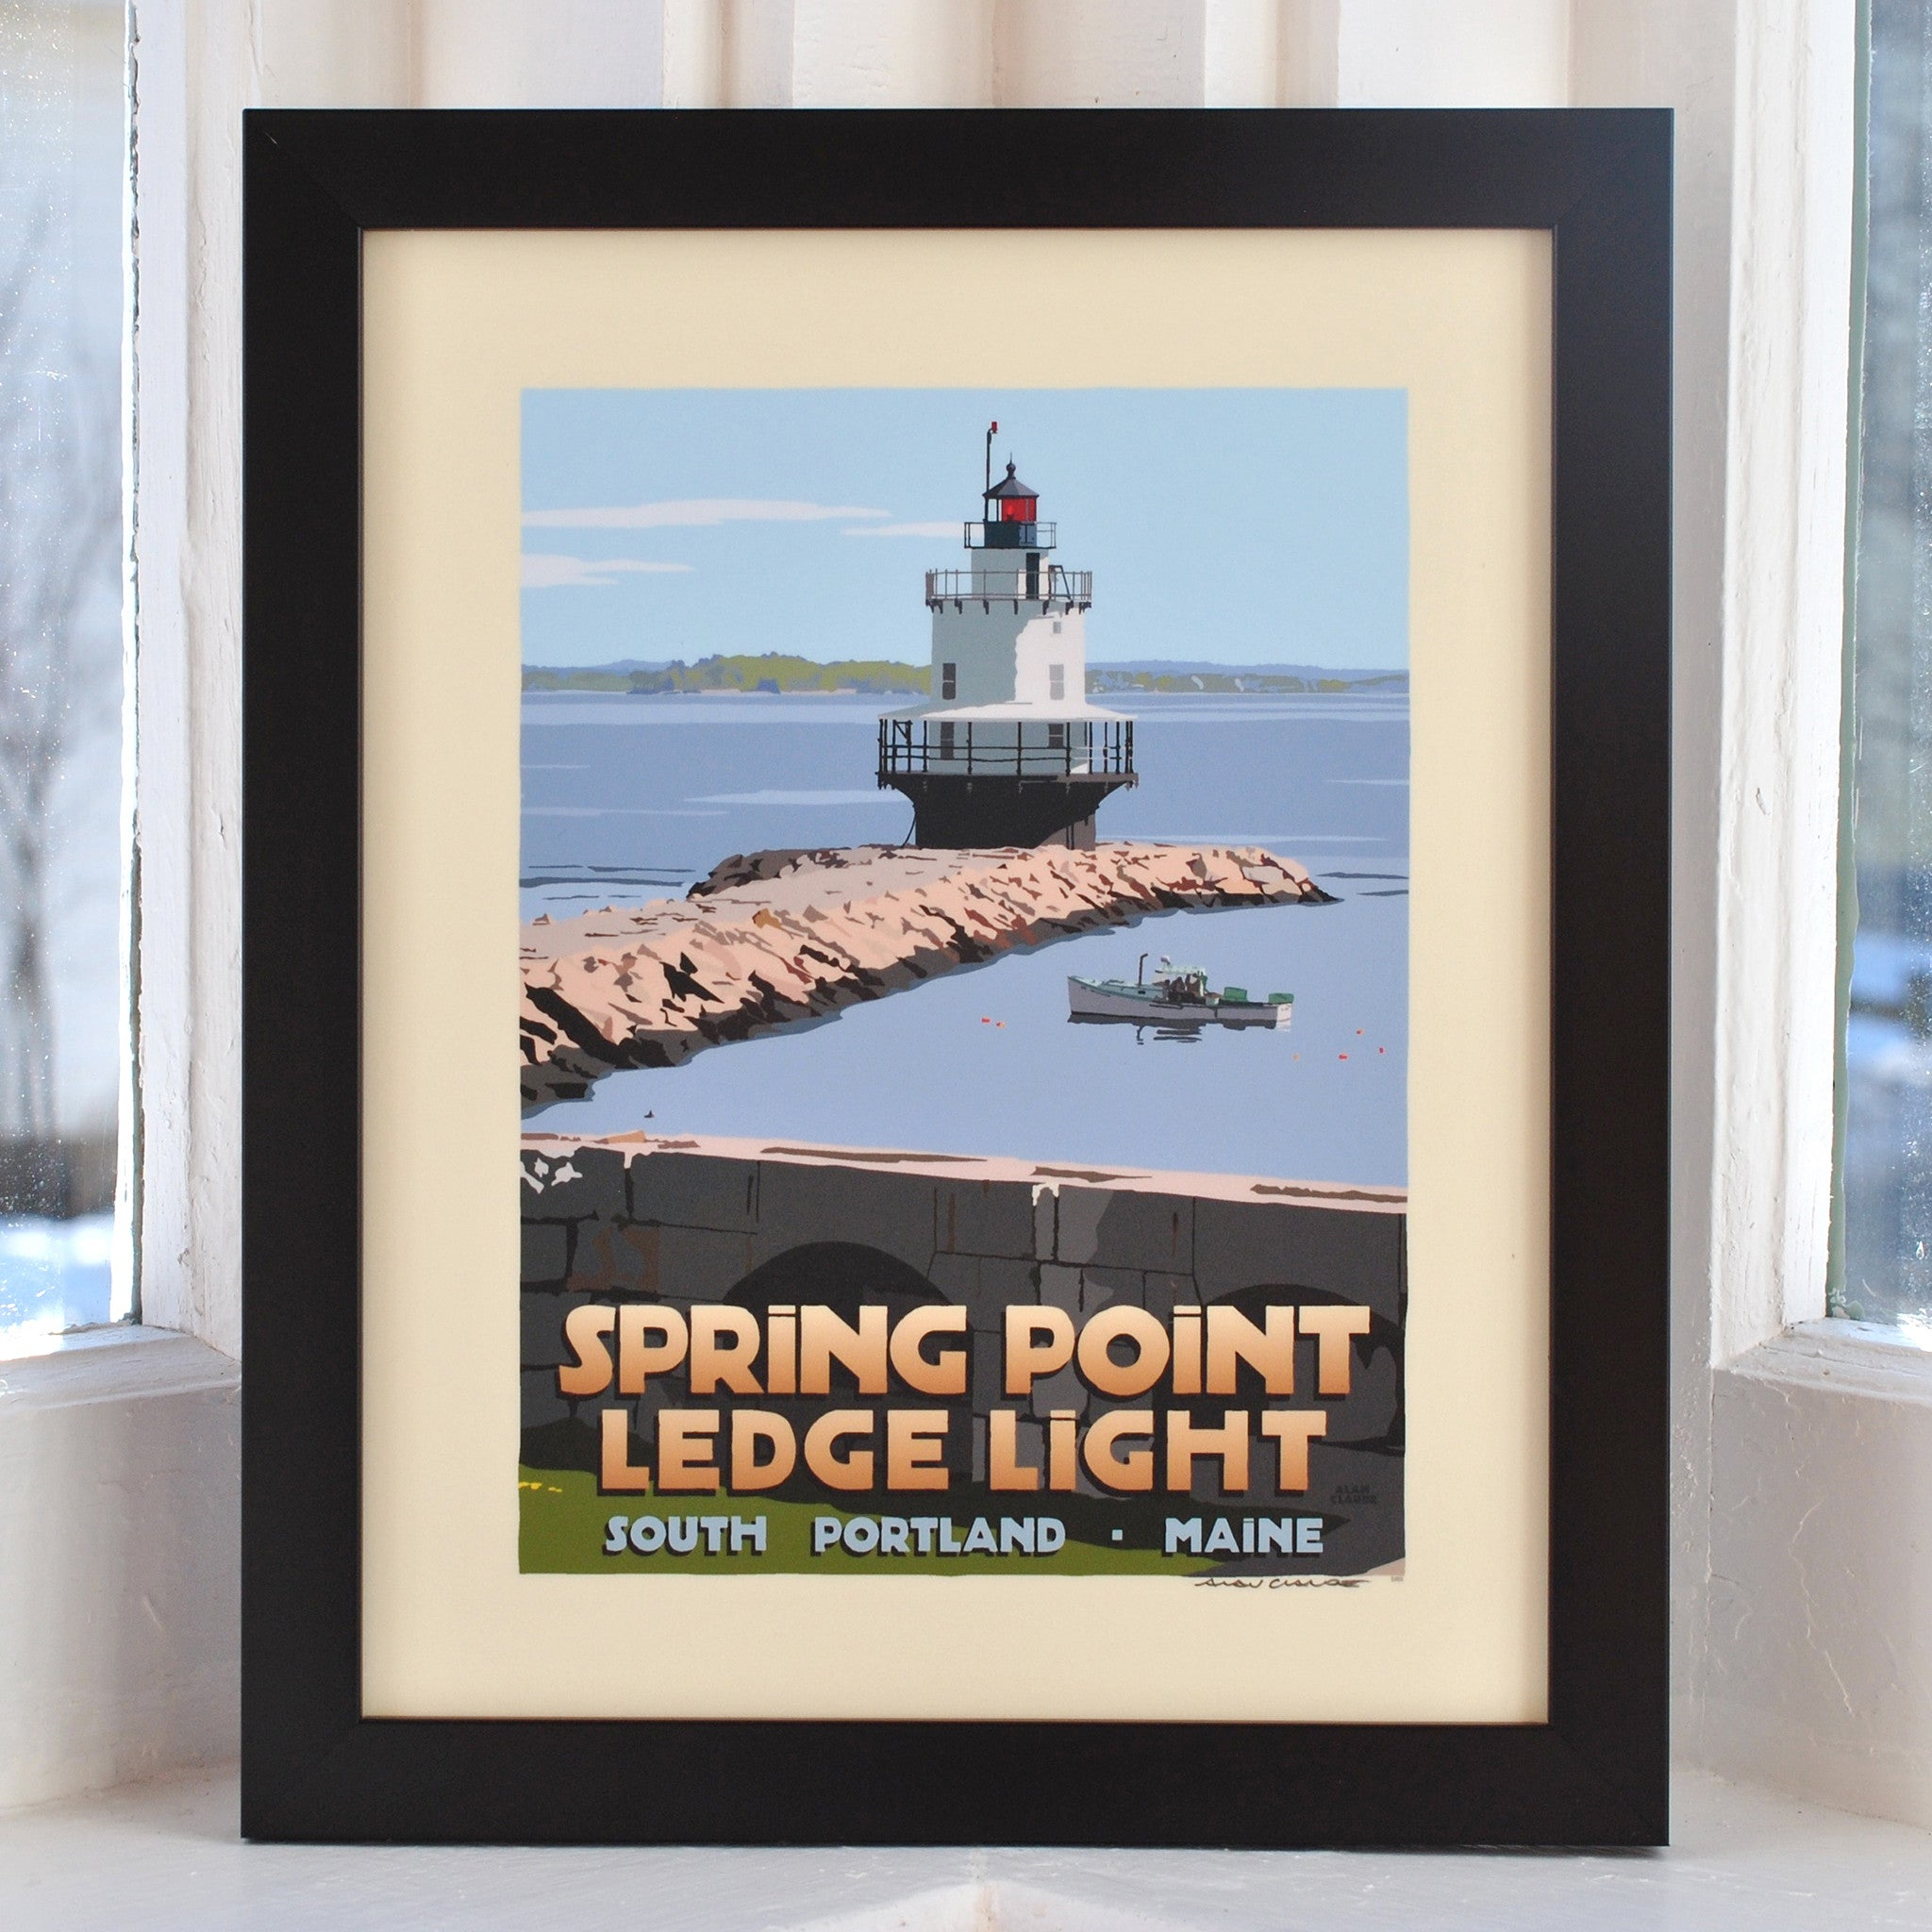 "Spring Point Ledge Light Art Print 8"" x 10"" Framed Travel Poster - Maine"